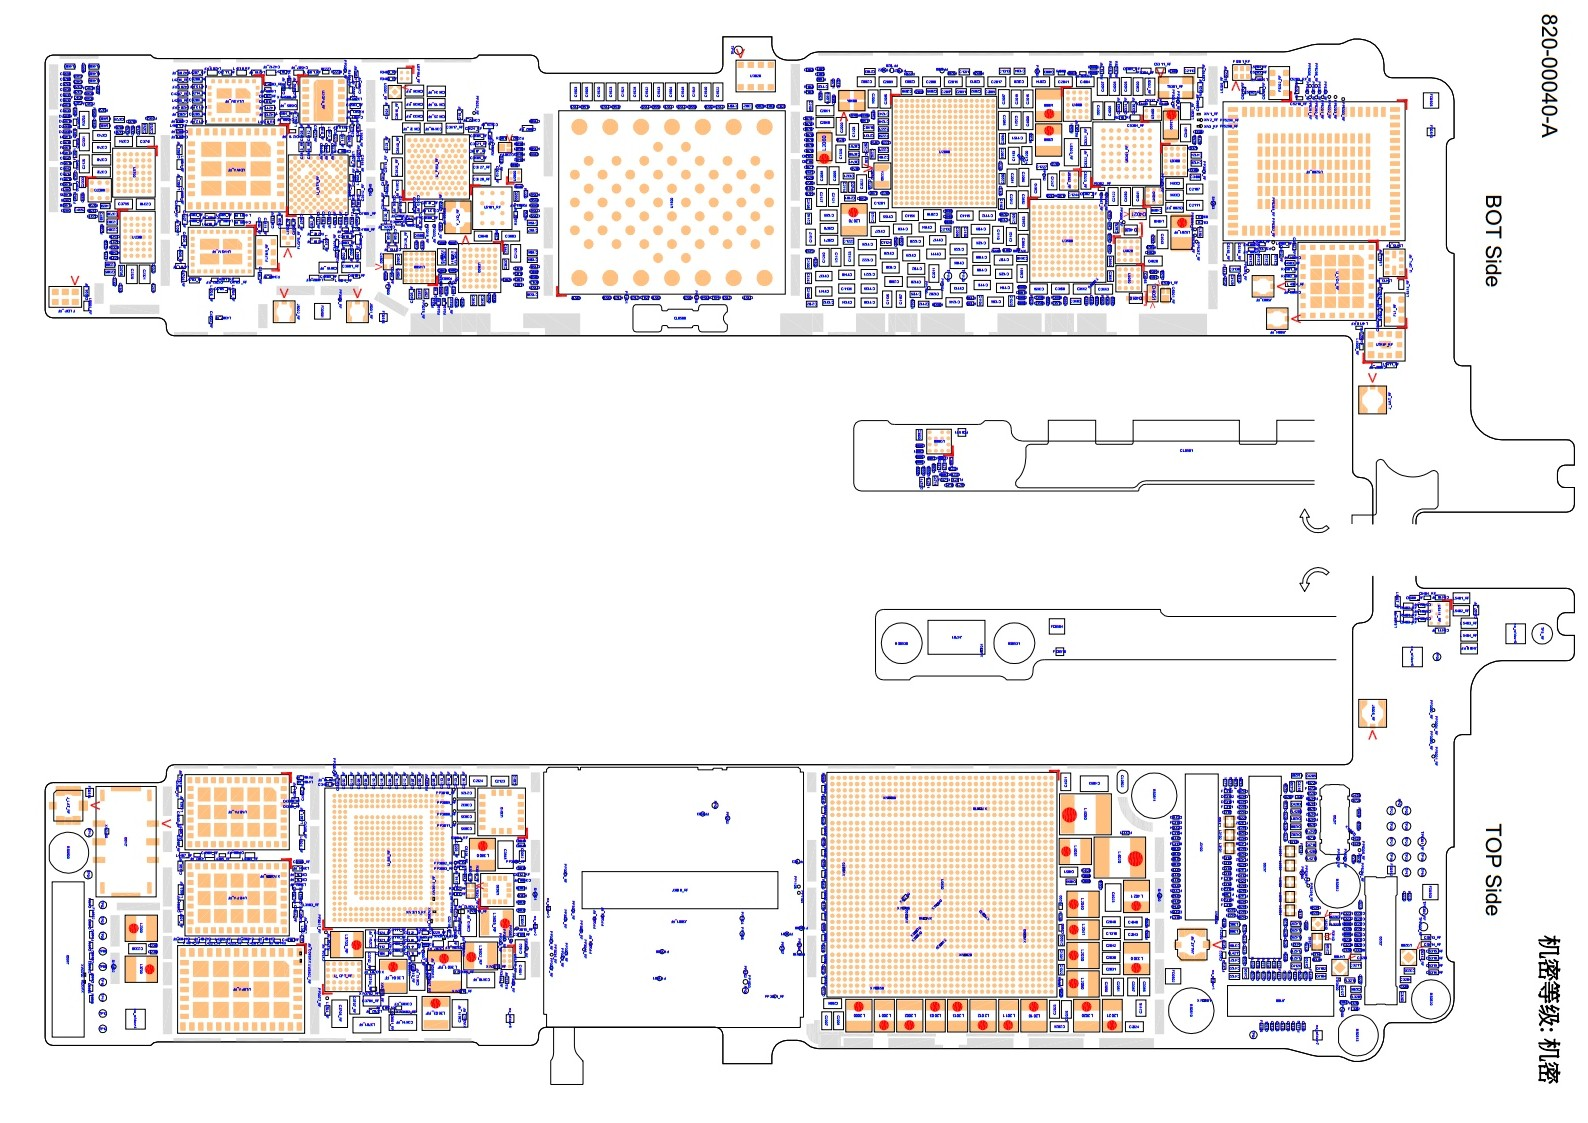 ... schematicjpg_Page2 05 iphone 6s n66 boardviewjpg_Page1. Schematic for iPhone 6s Plus